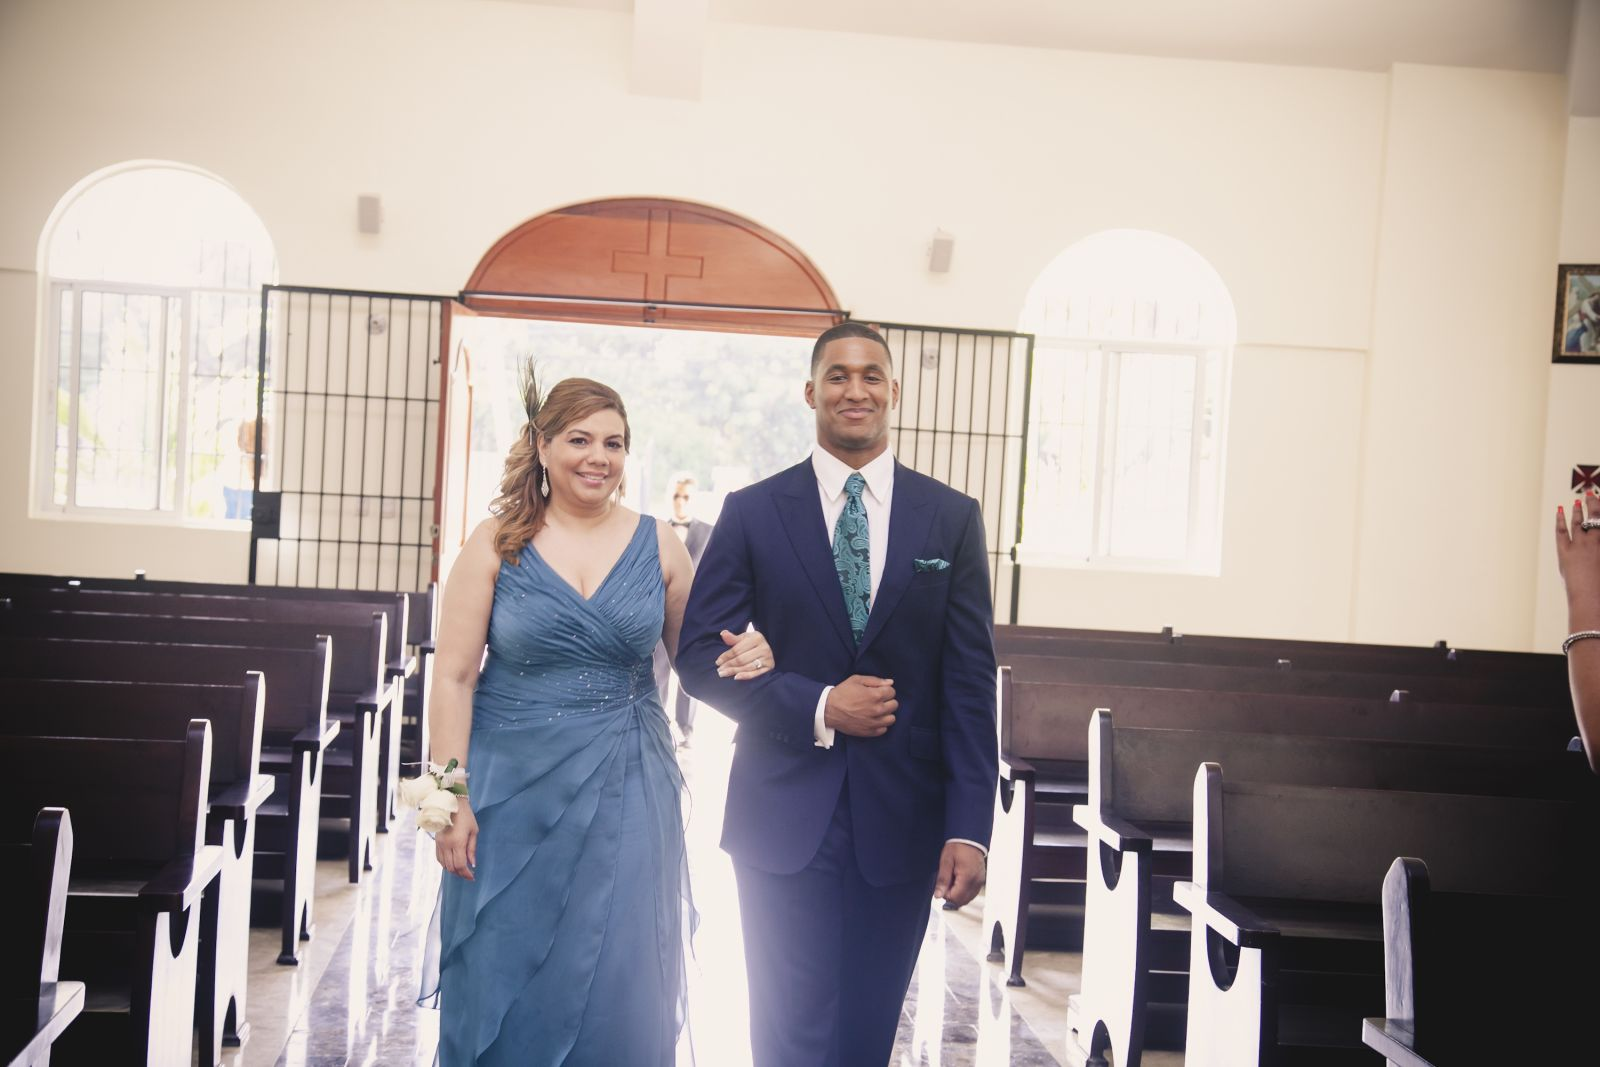 My mom escorted by the best man